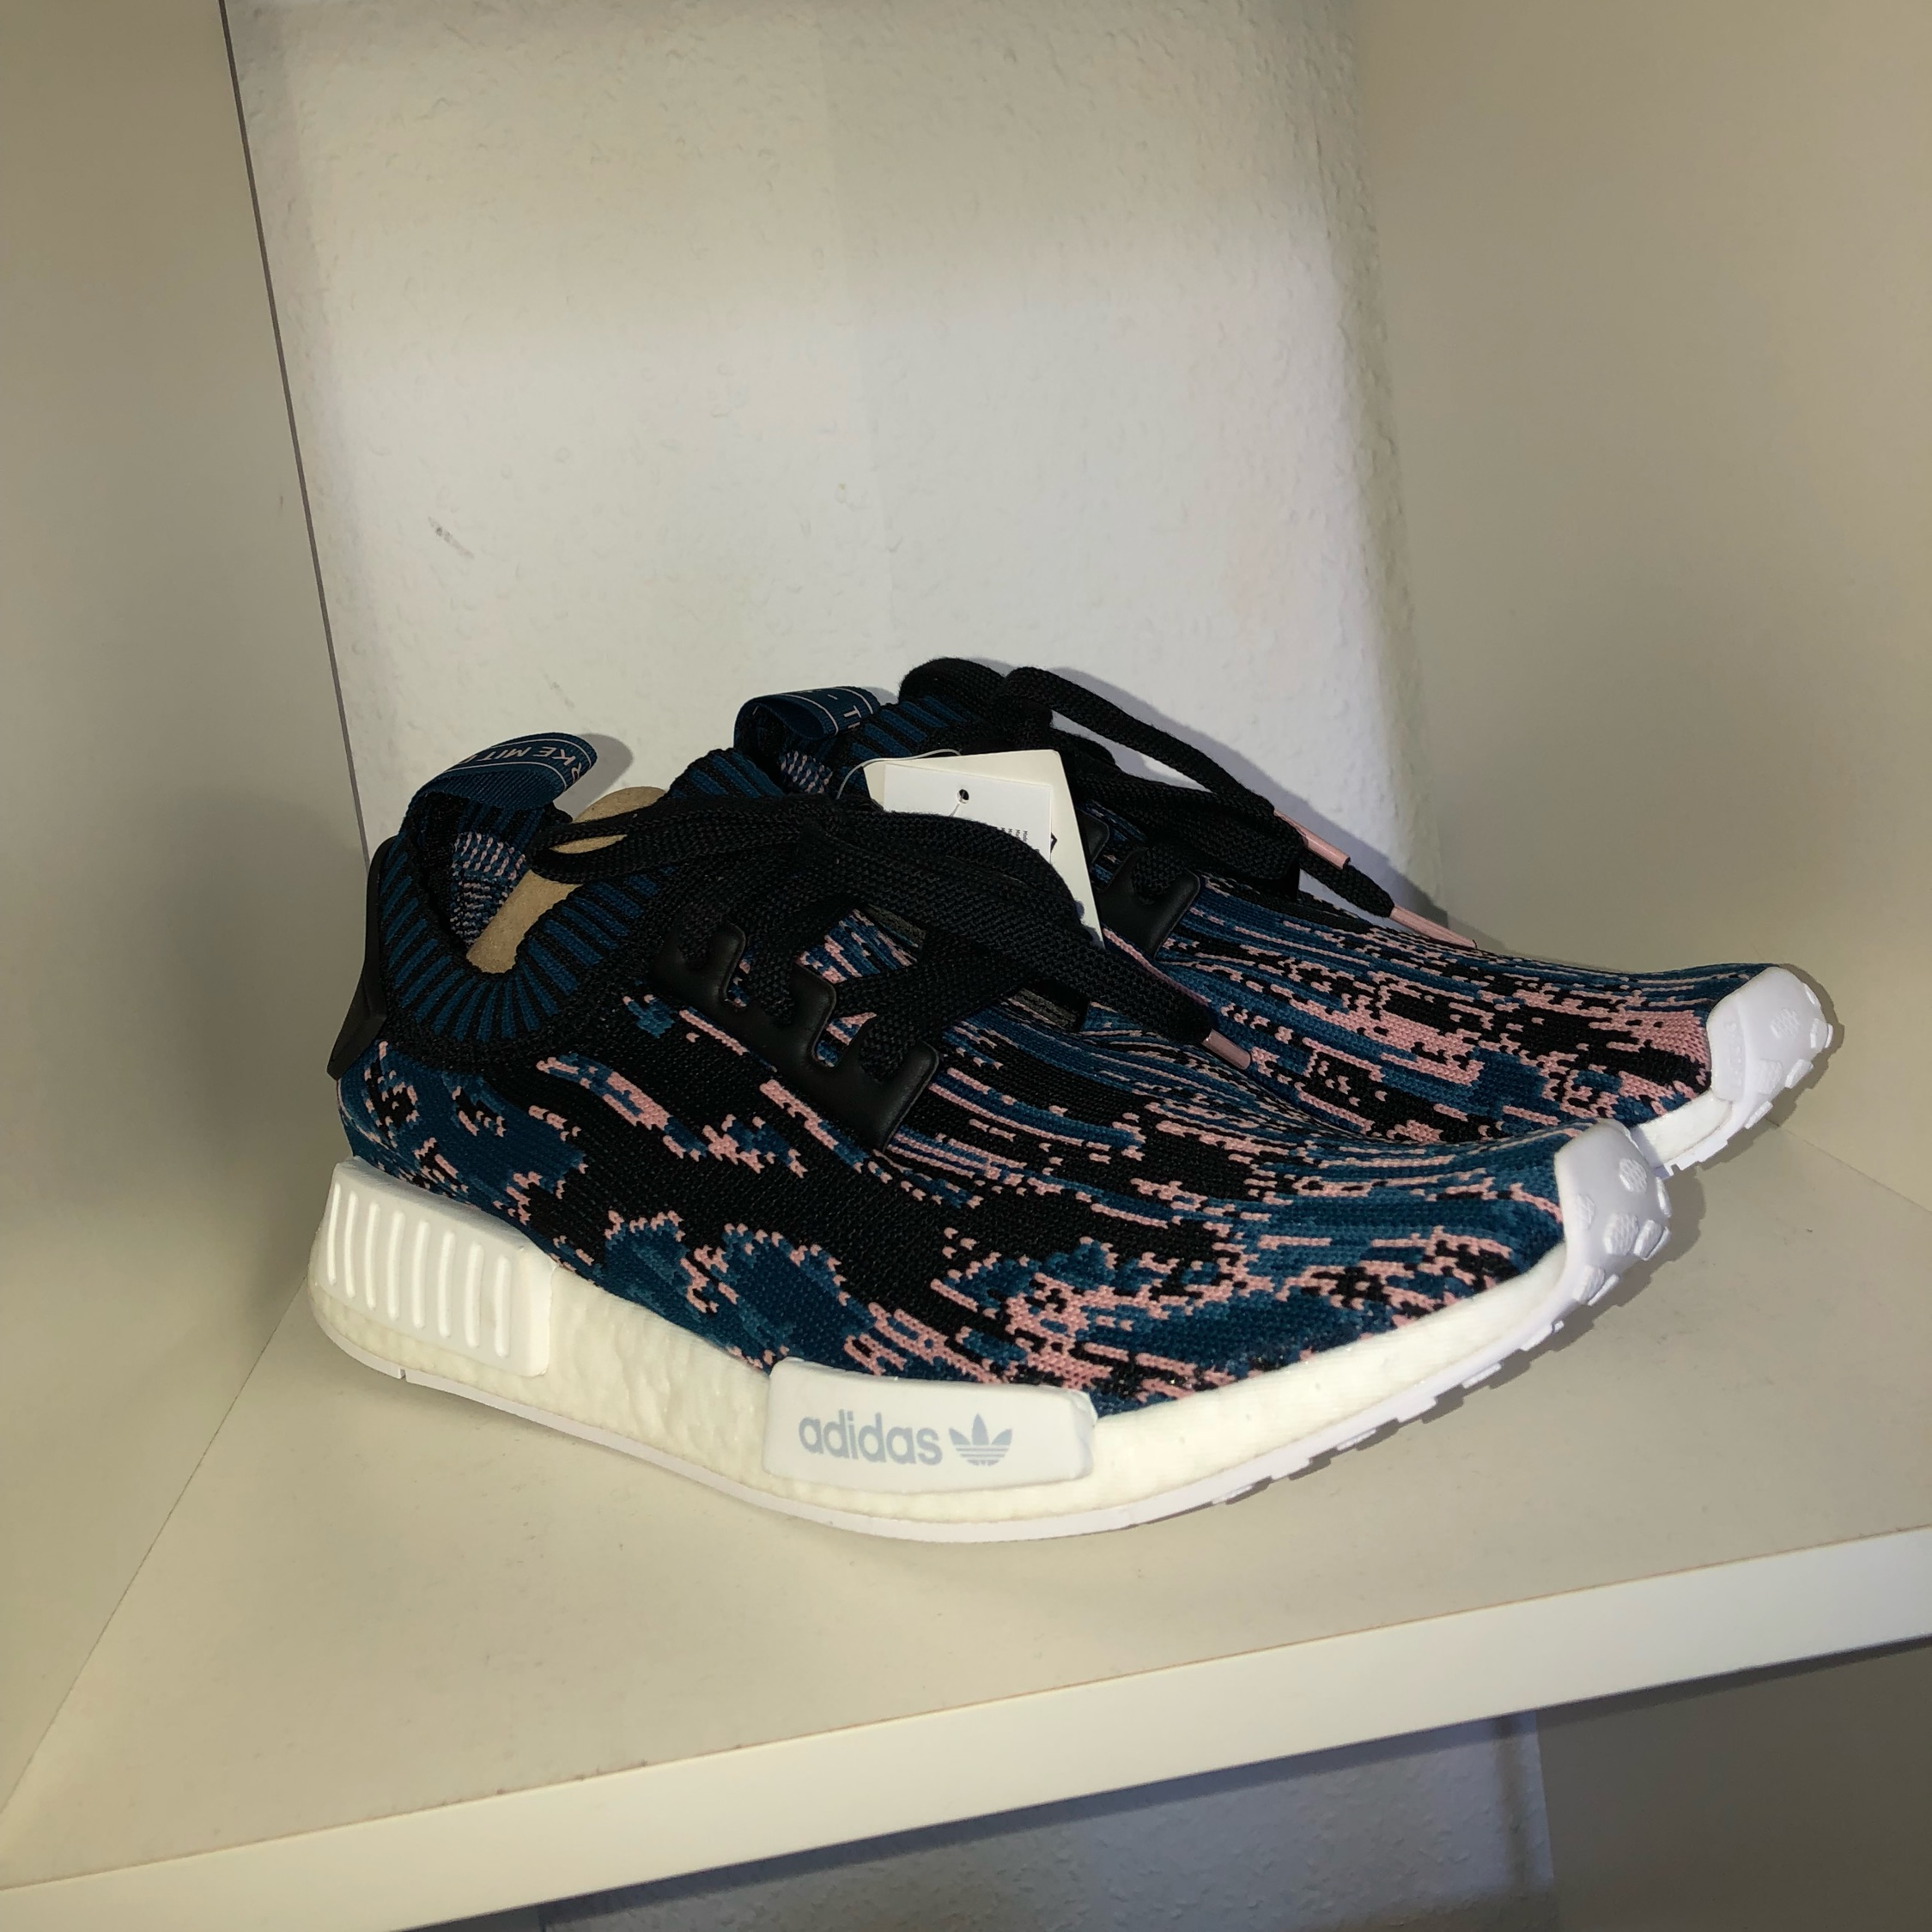 new style be826 a2c2a Adidas Nmd R1 Sns Datamosh 2.0 Blue Night